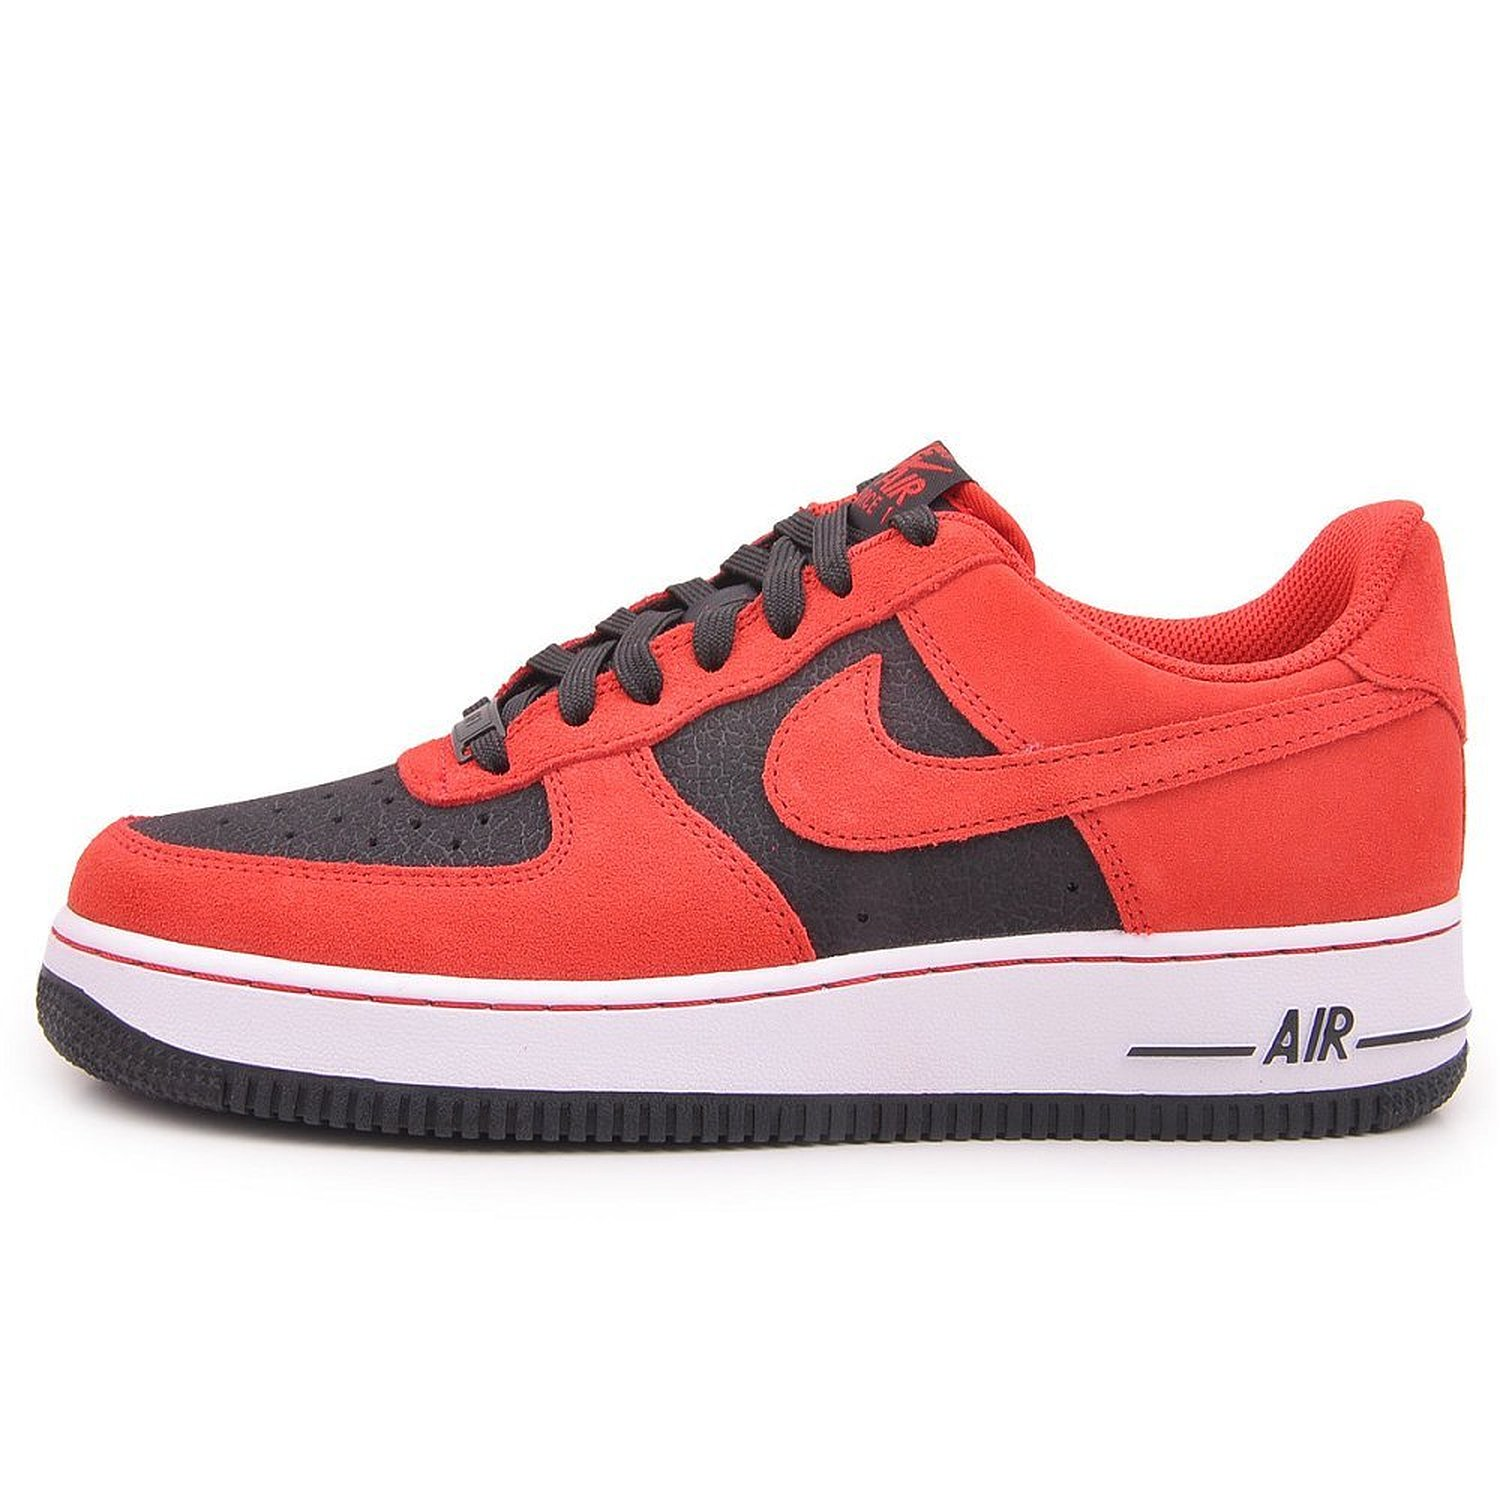 Barato Air Force One Trainers Trainers One find Air Force One Trainers deals on 7fc8af